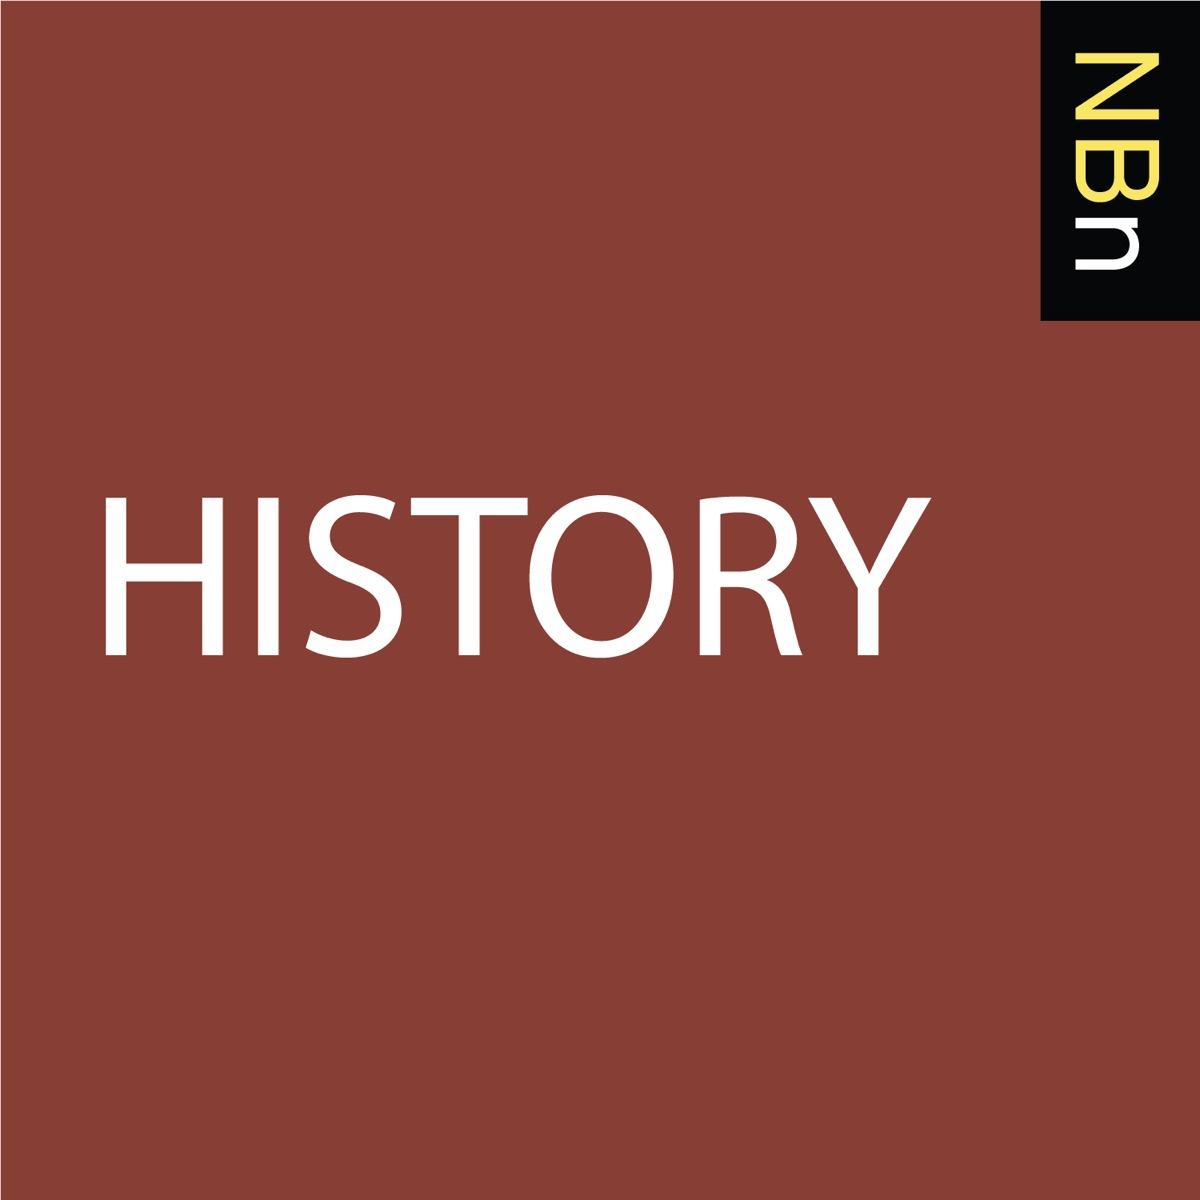 New Books In History American Podcasts History of the saint's corpse in jojo's bizarre adventure. american podcasts